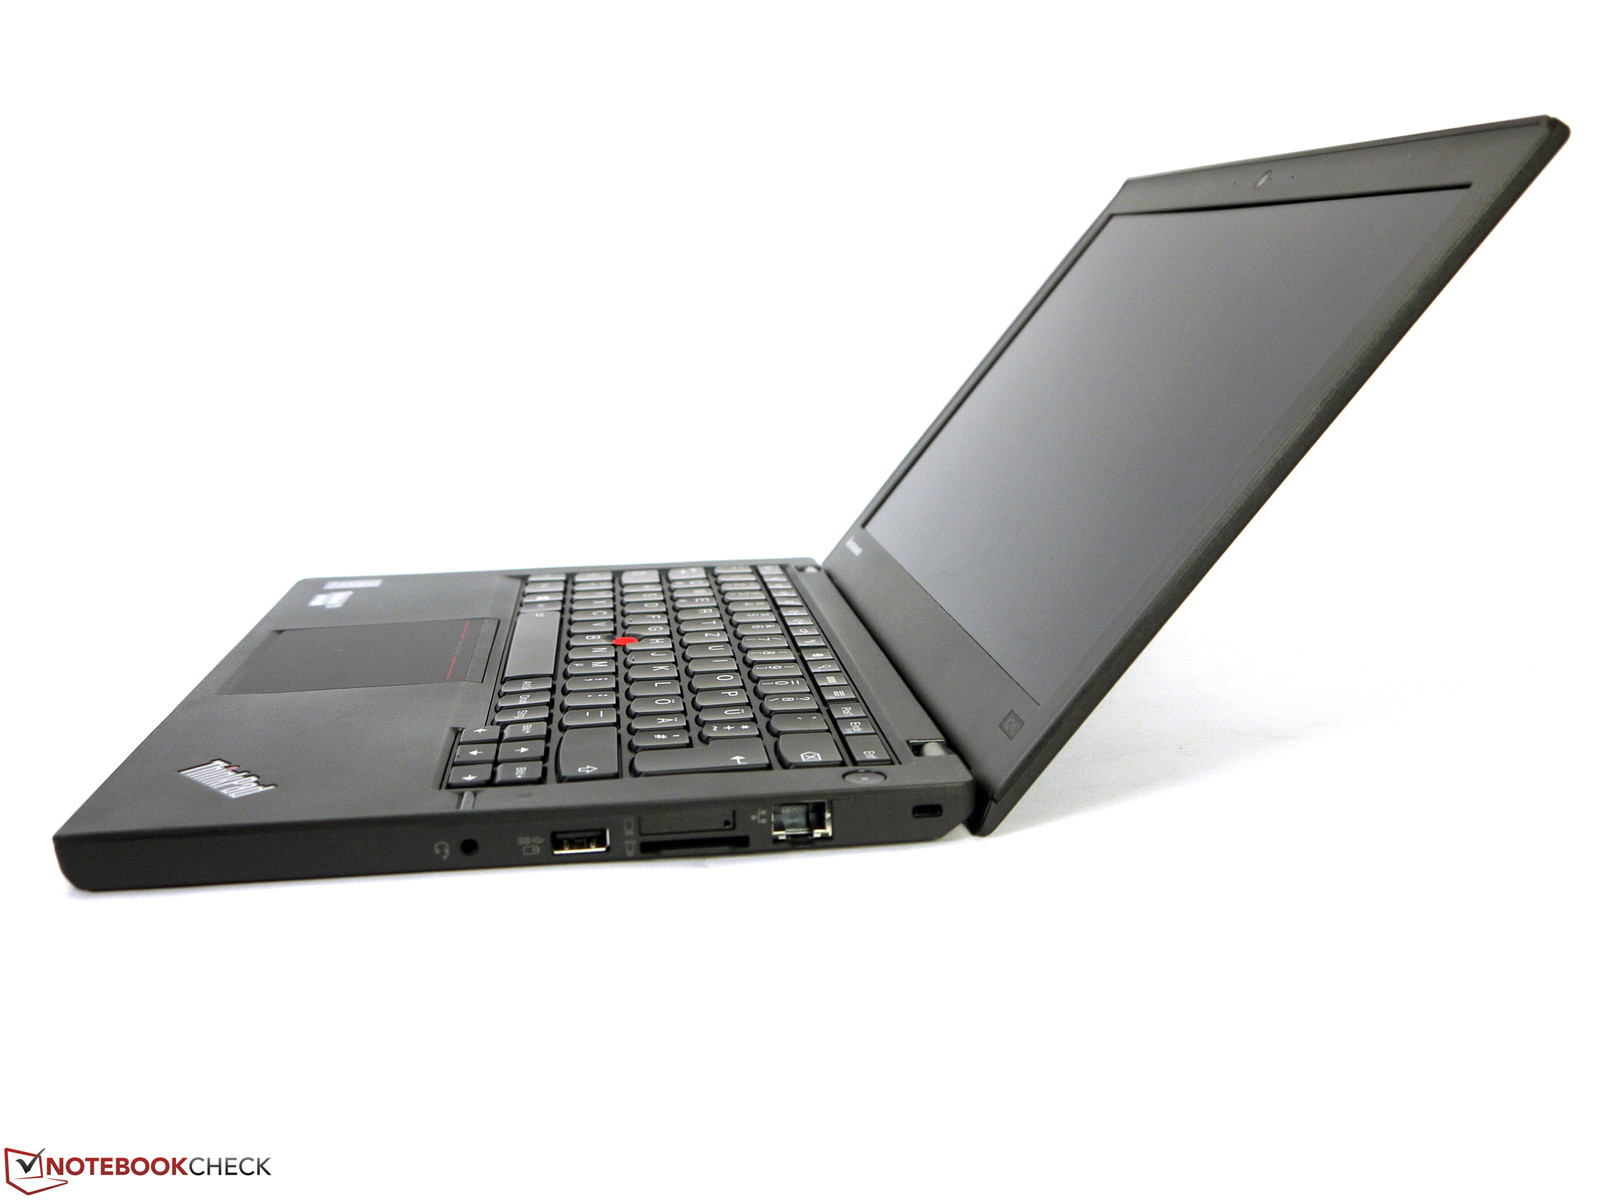 Lenovo Thinkpad X240 Refurbished